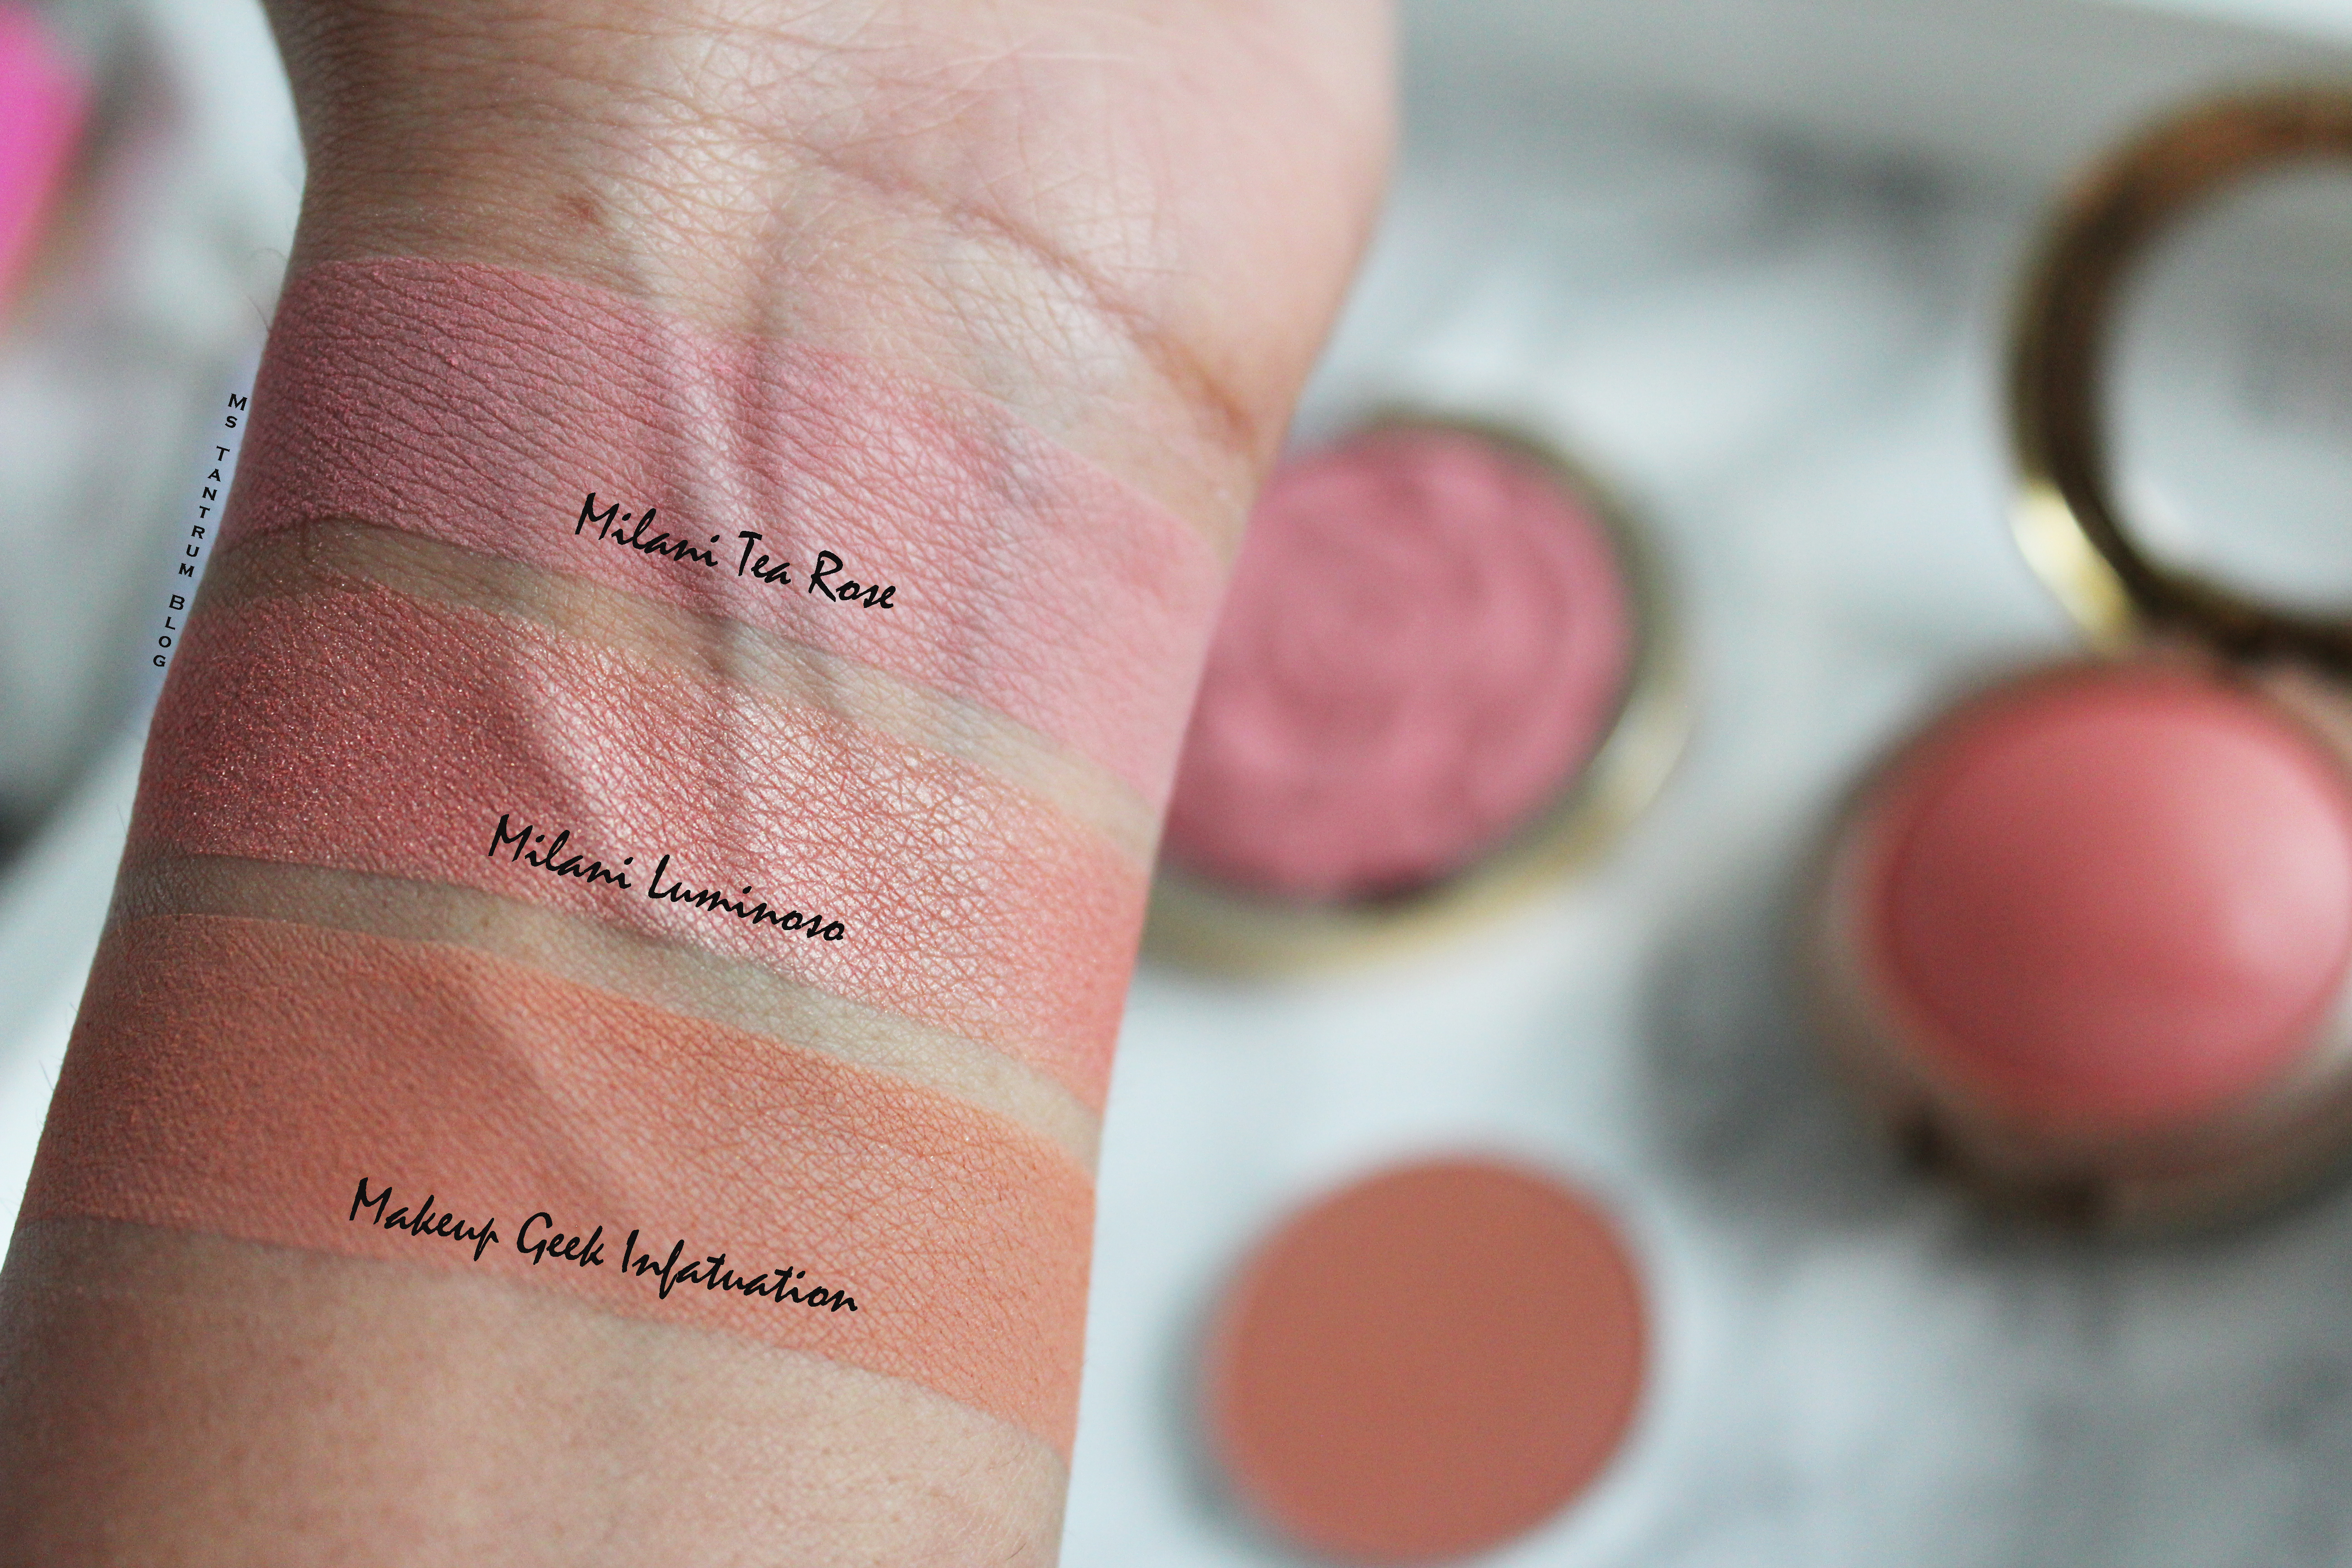 Milani Blushes swatch, makeup geek infatuation, milani tea rose, milani luminoso